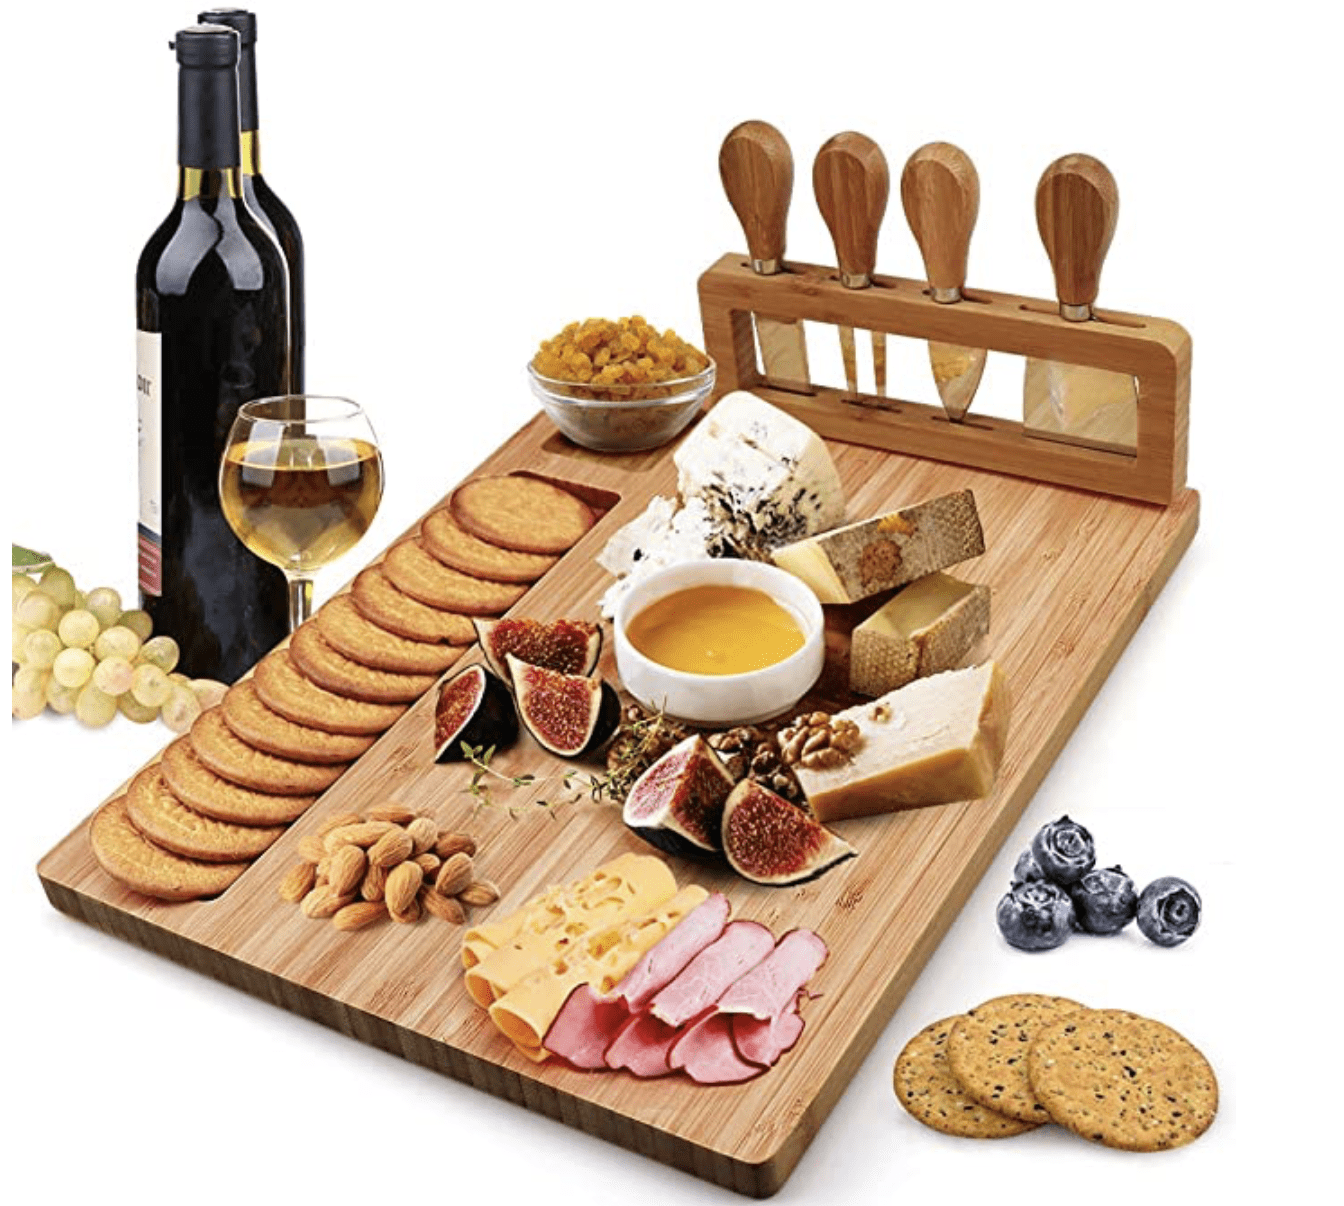 A charcuterie board that will make you feel like you're dining at a five star hotel.